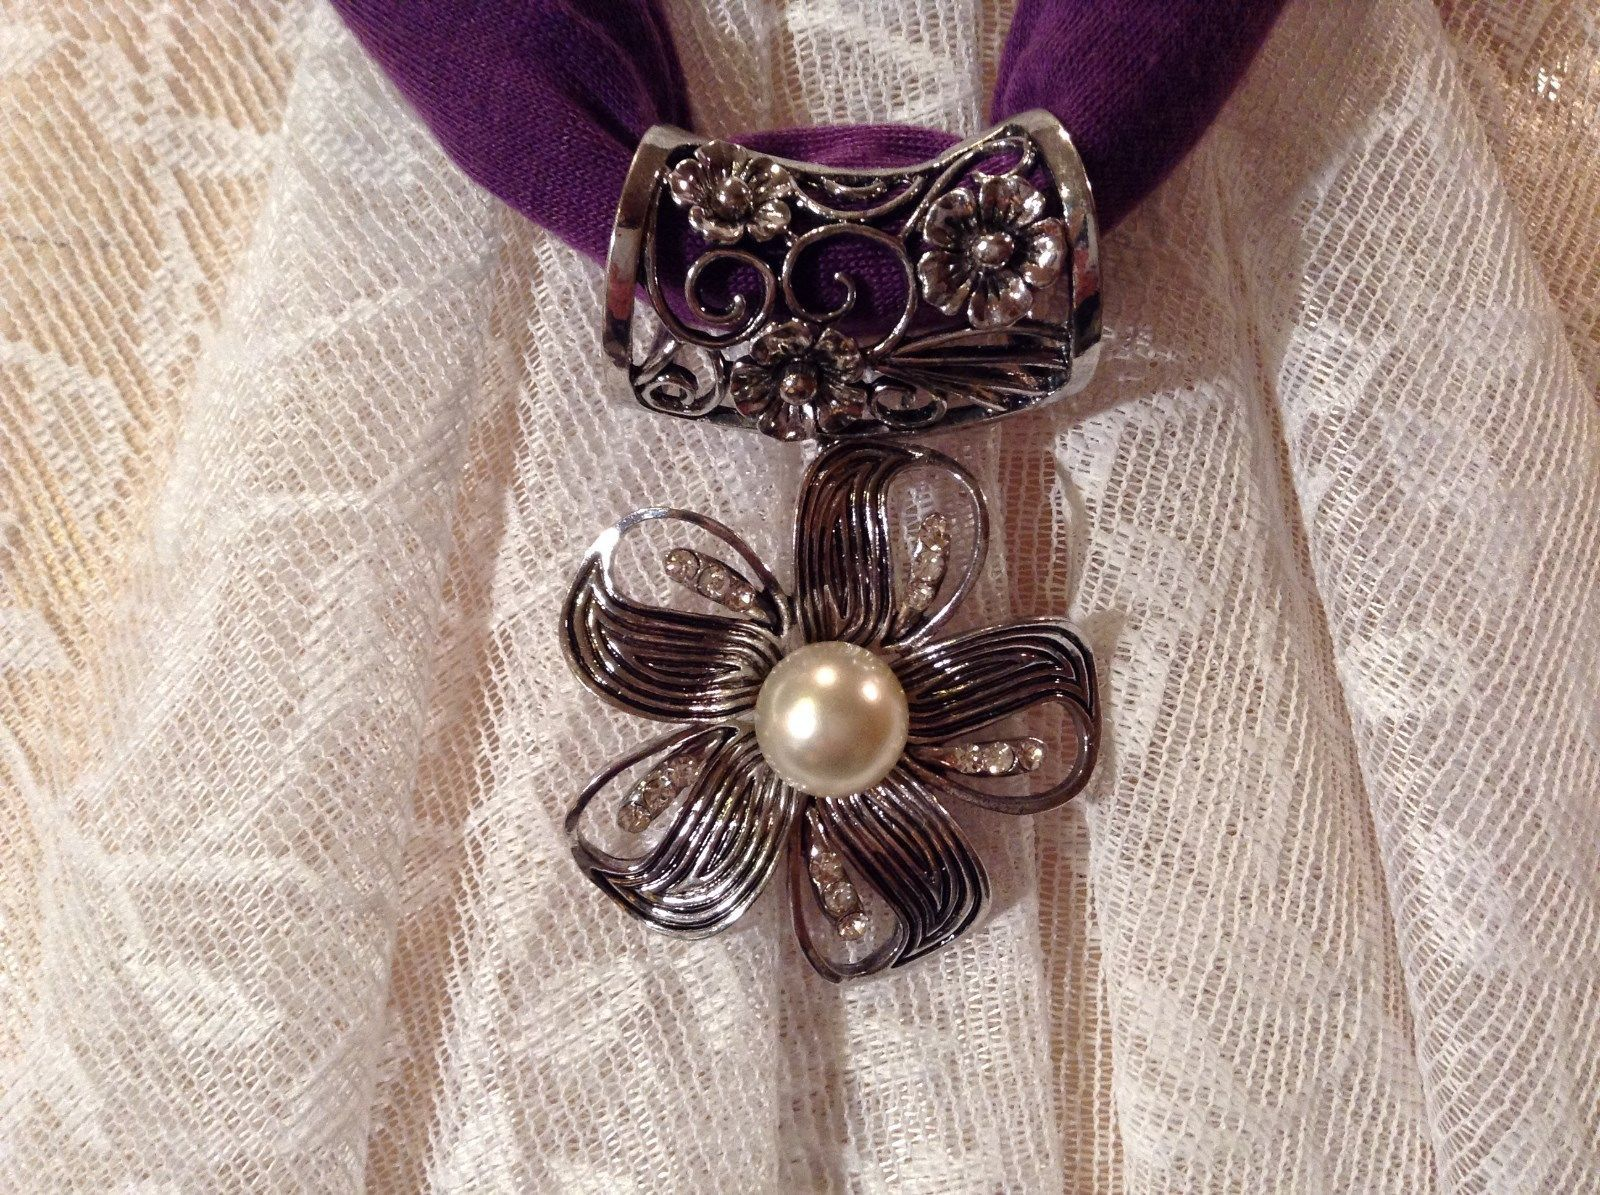 Flower with 5 Petals with 3 Small Clear Crystals in Petals Scarf Pendant